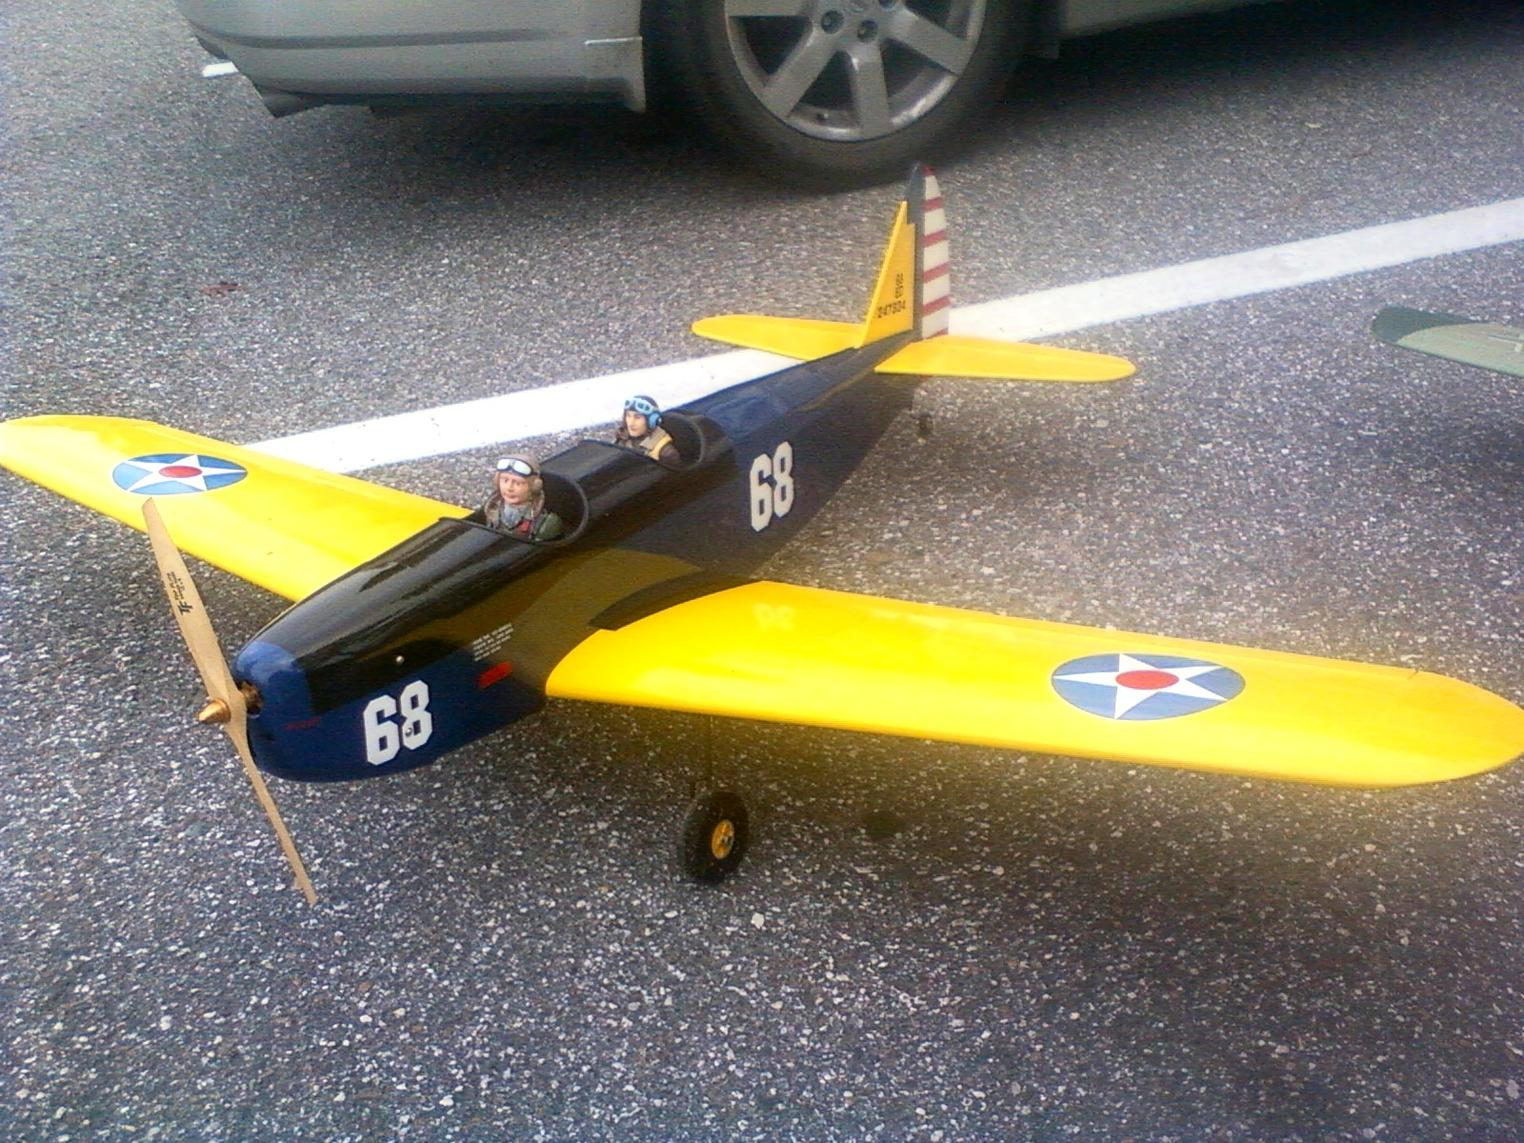 This is my new Kyosho PT-19. It flies very scale on a 4s battery and with authority on 5s. The motor is a Tower Pro 3520-7T. As you can see I still need to install the windshields.